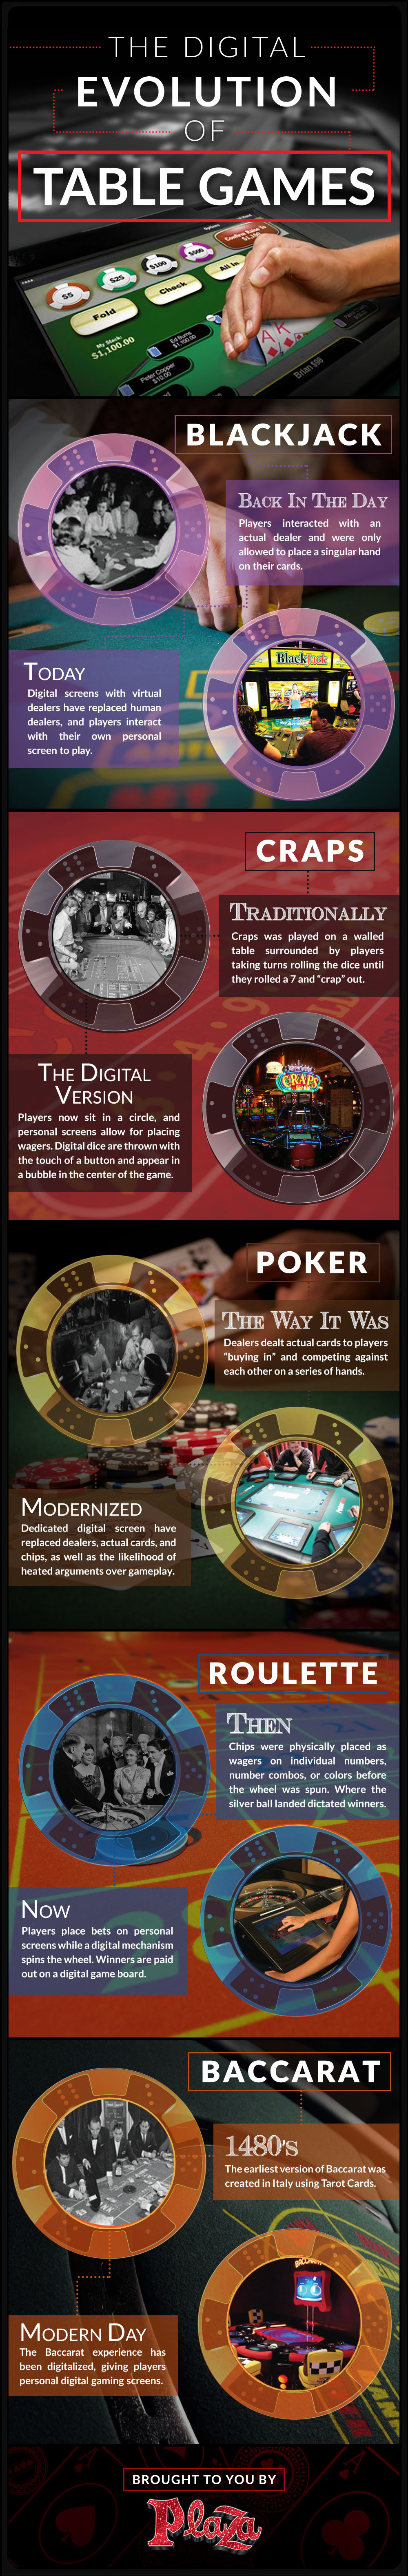 Casino Table Games: The Digital Evolution - Infographic